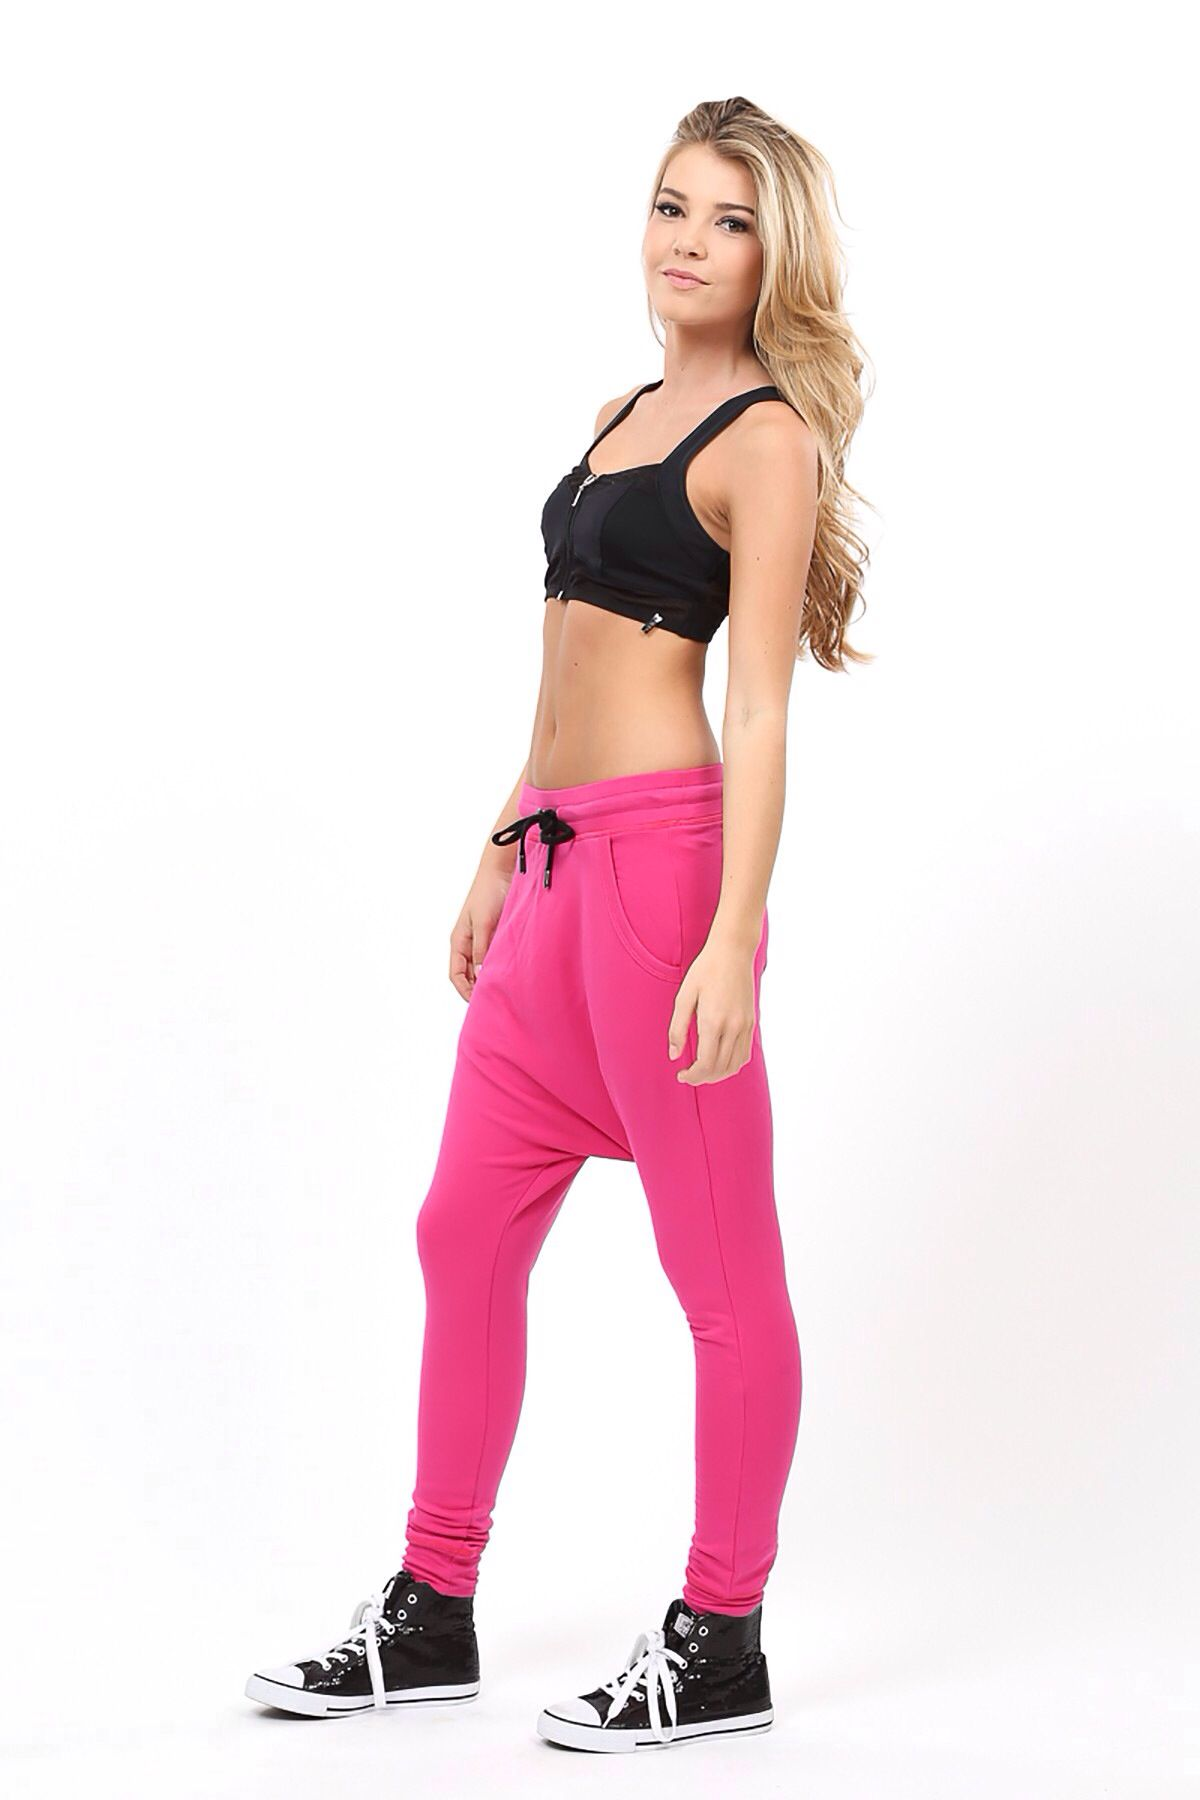 Cute work out outfit | My style | Pinterest